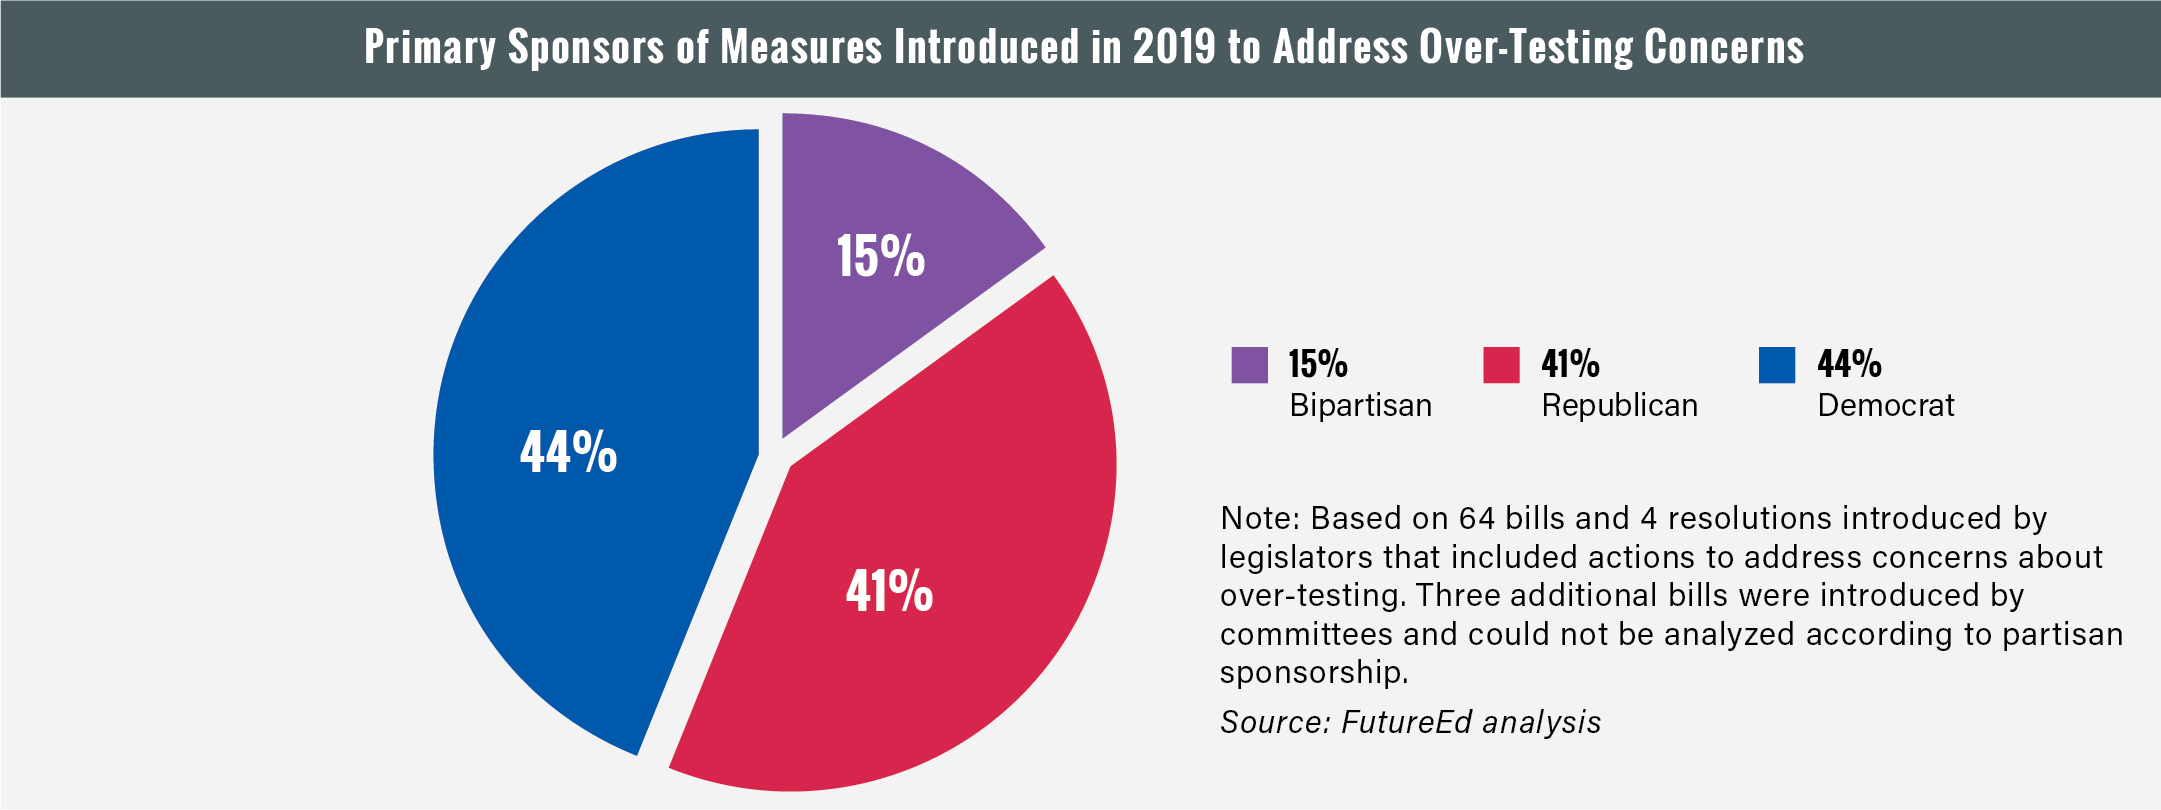 Figure: Primary sponsors of measures introduced in 2019 to address over-testing concerns